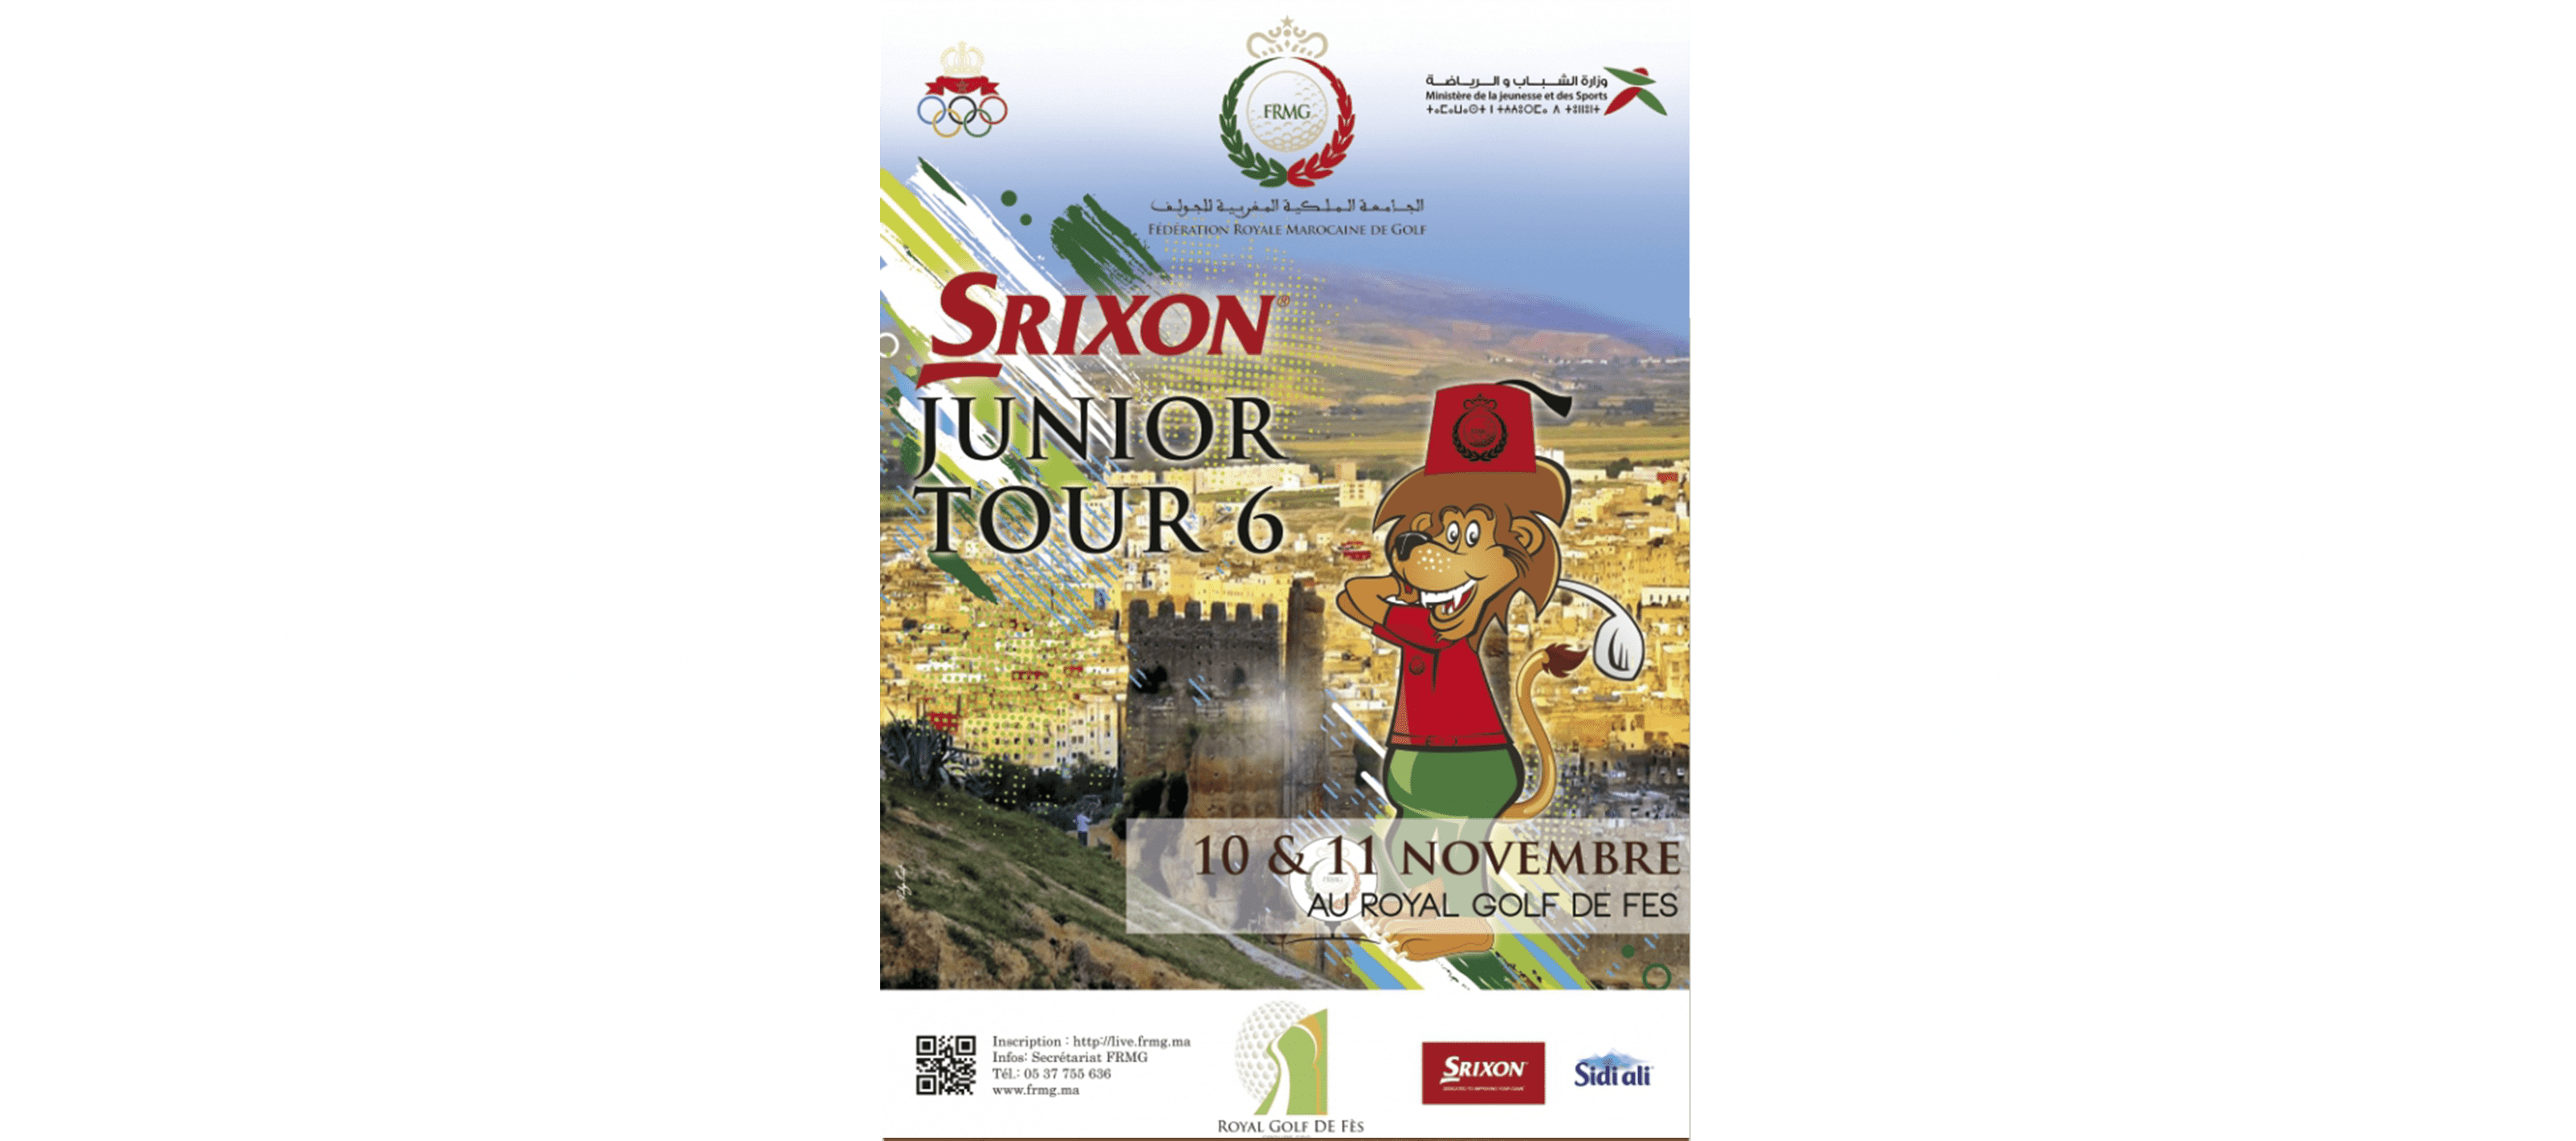 srixon-junior-tour-Royal-golf-de-fes-golfs-du-maroc